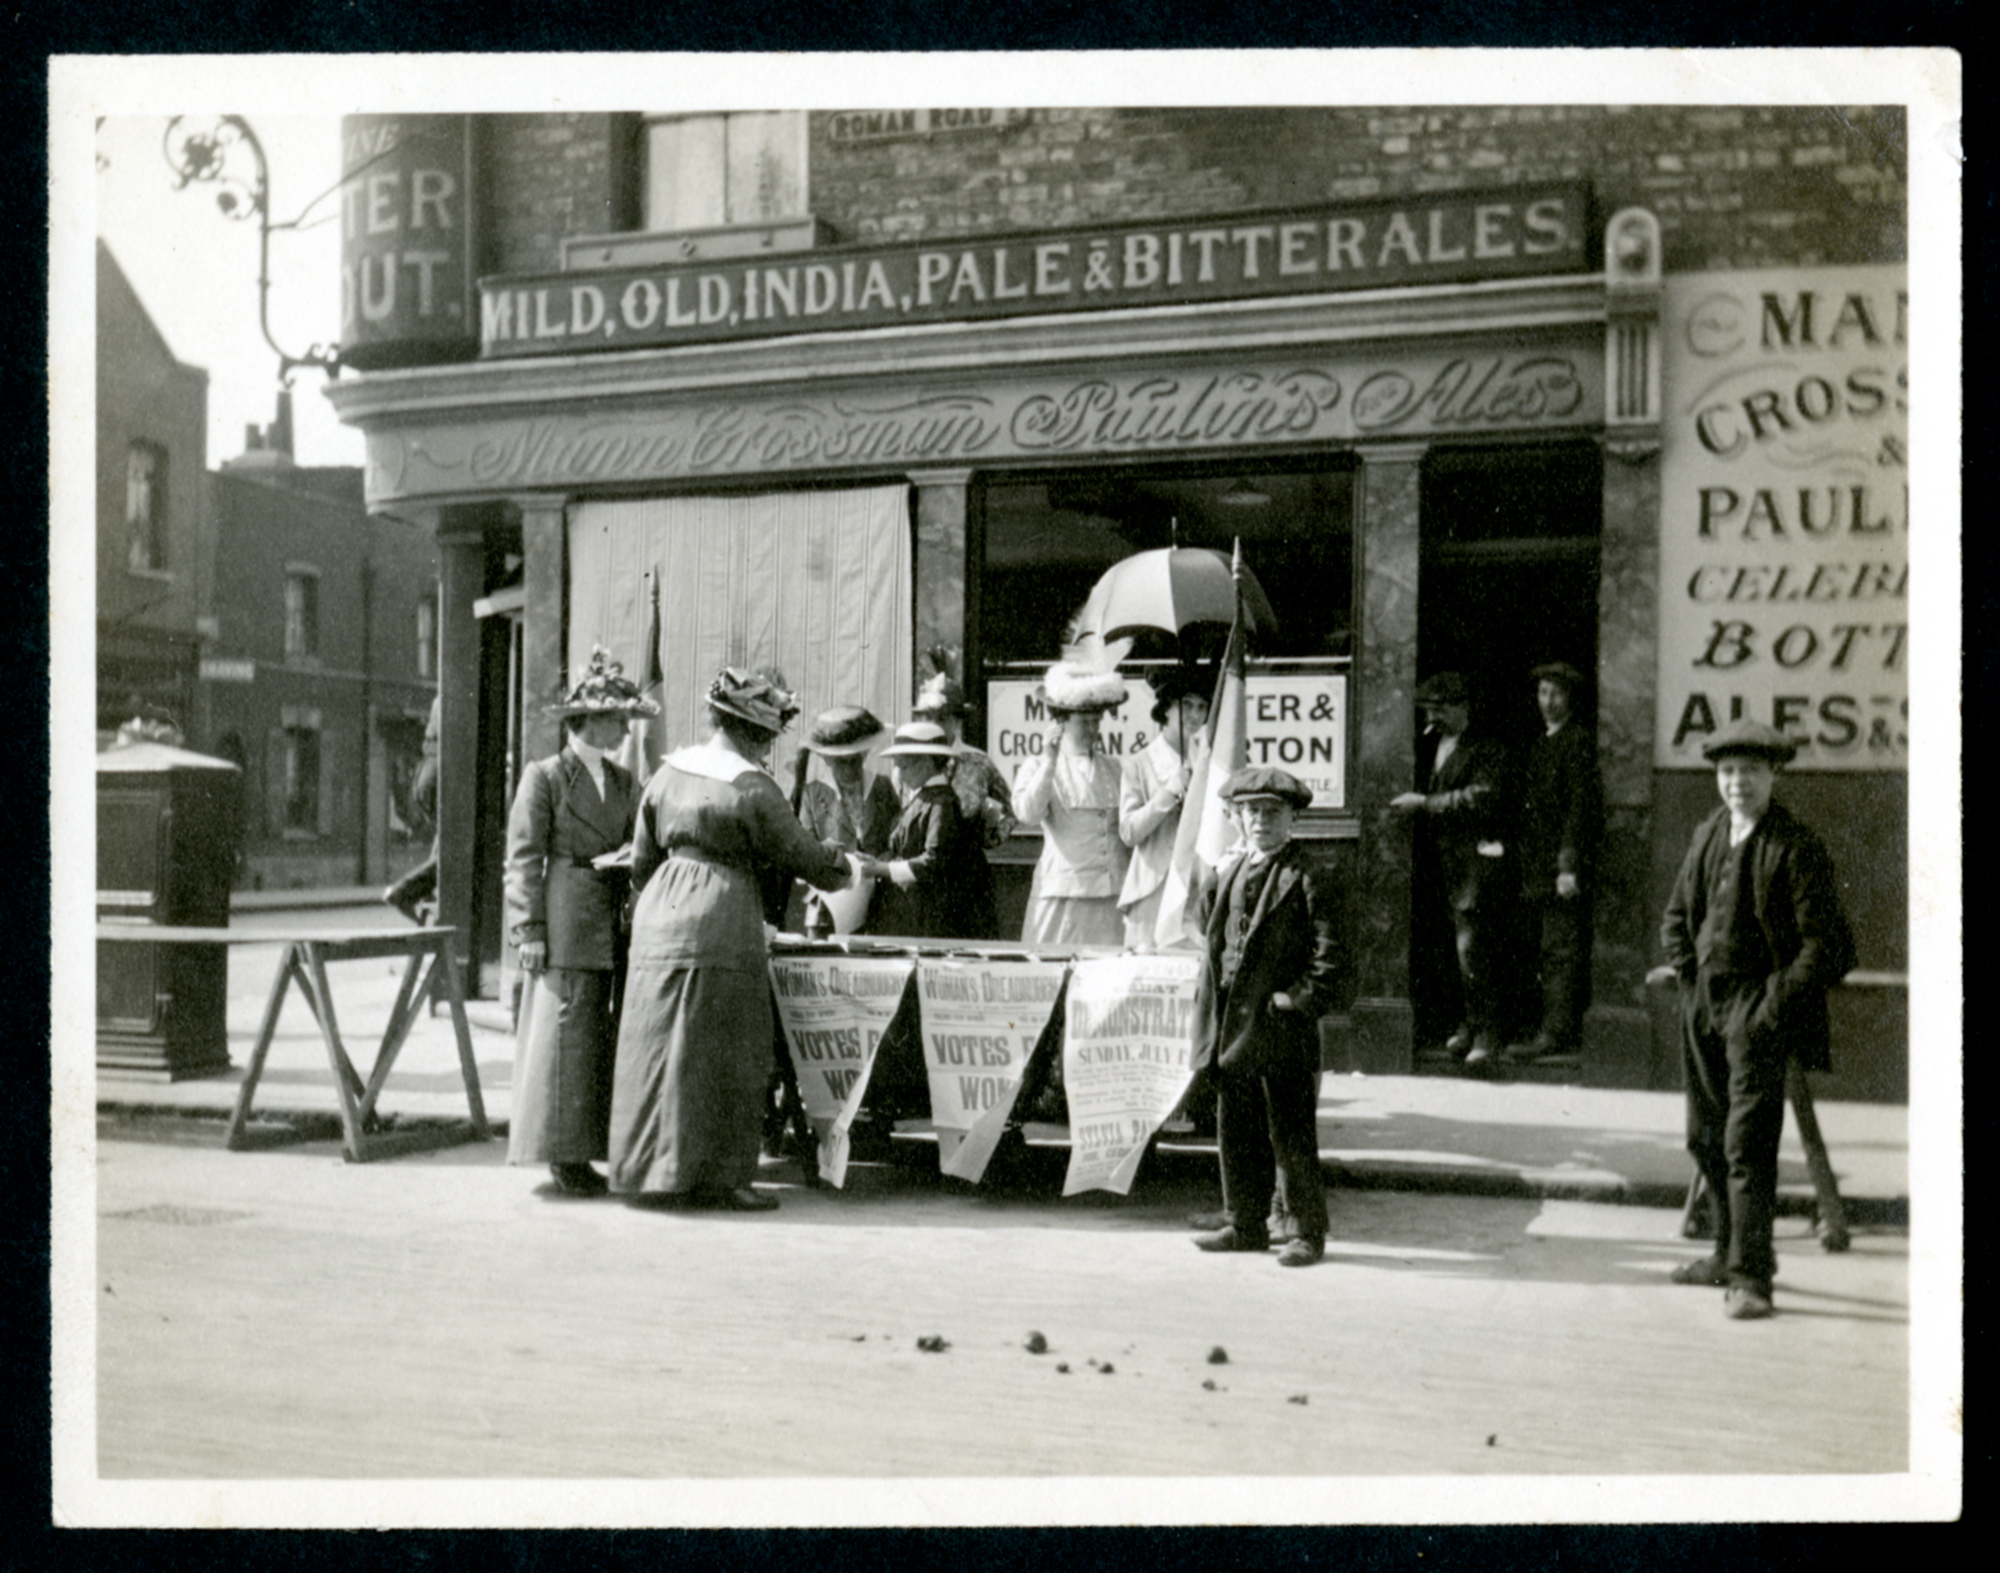 Stalls of the East London Federation of the Suffragetes in Roman Road with the announcement of the procession and meeting in Canning Town on July twelfth.